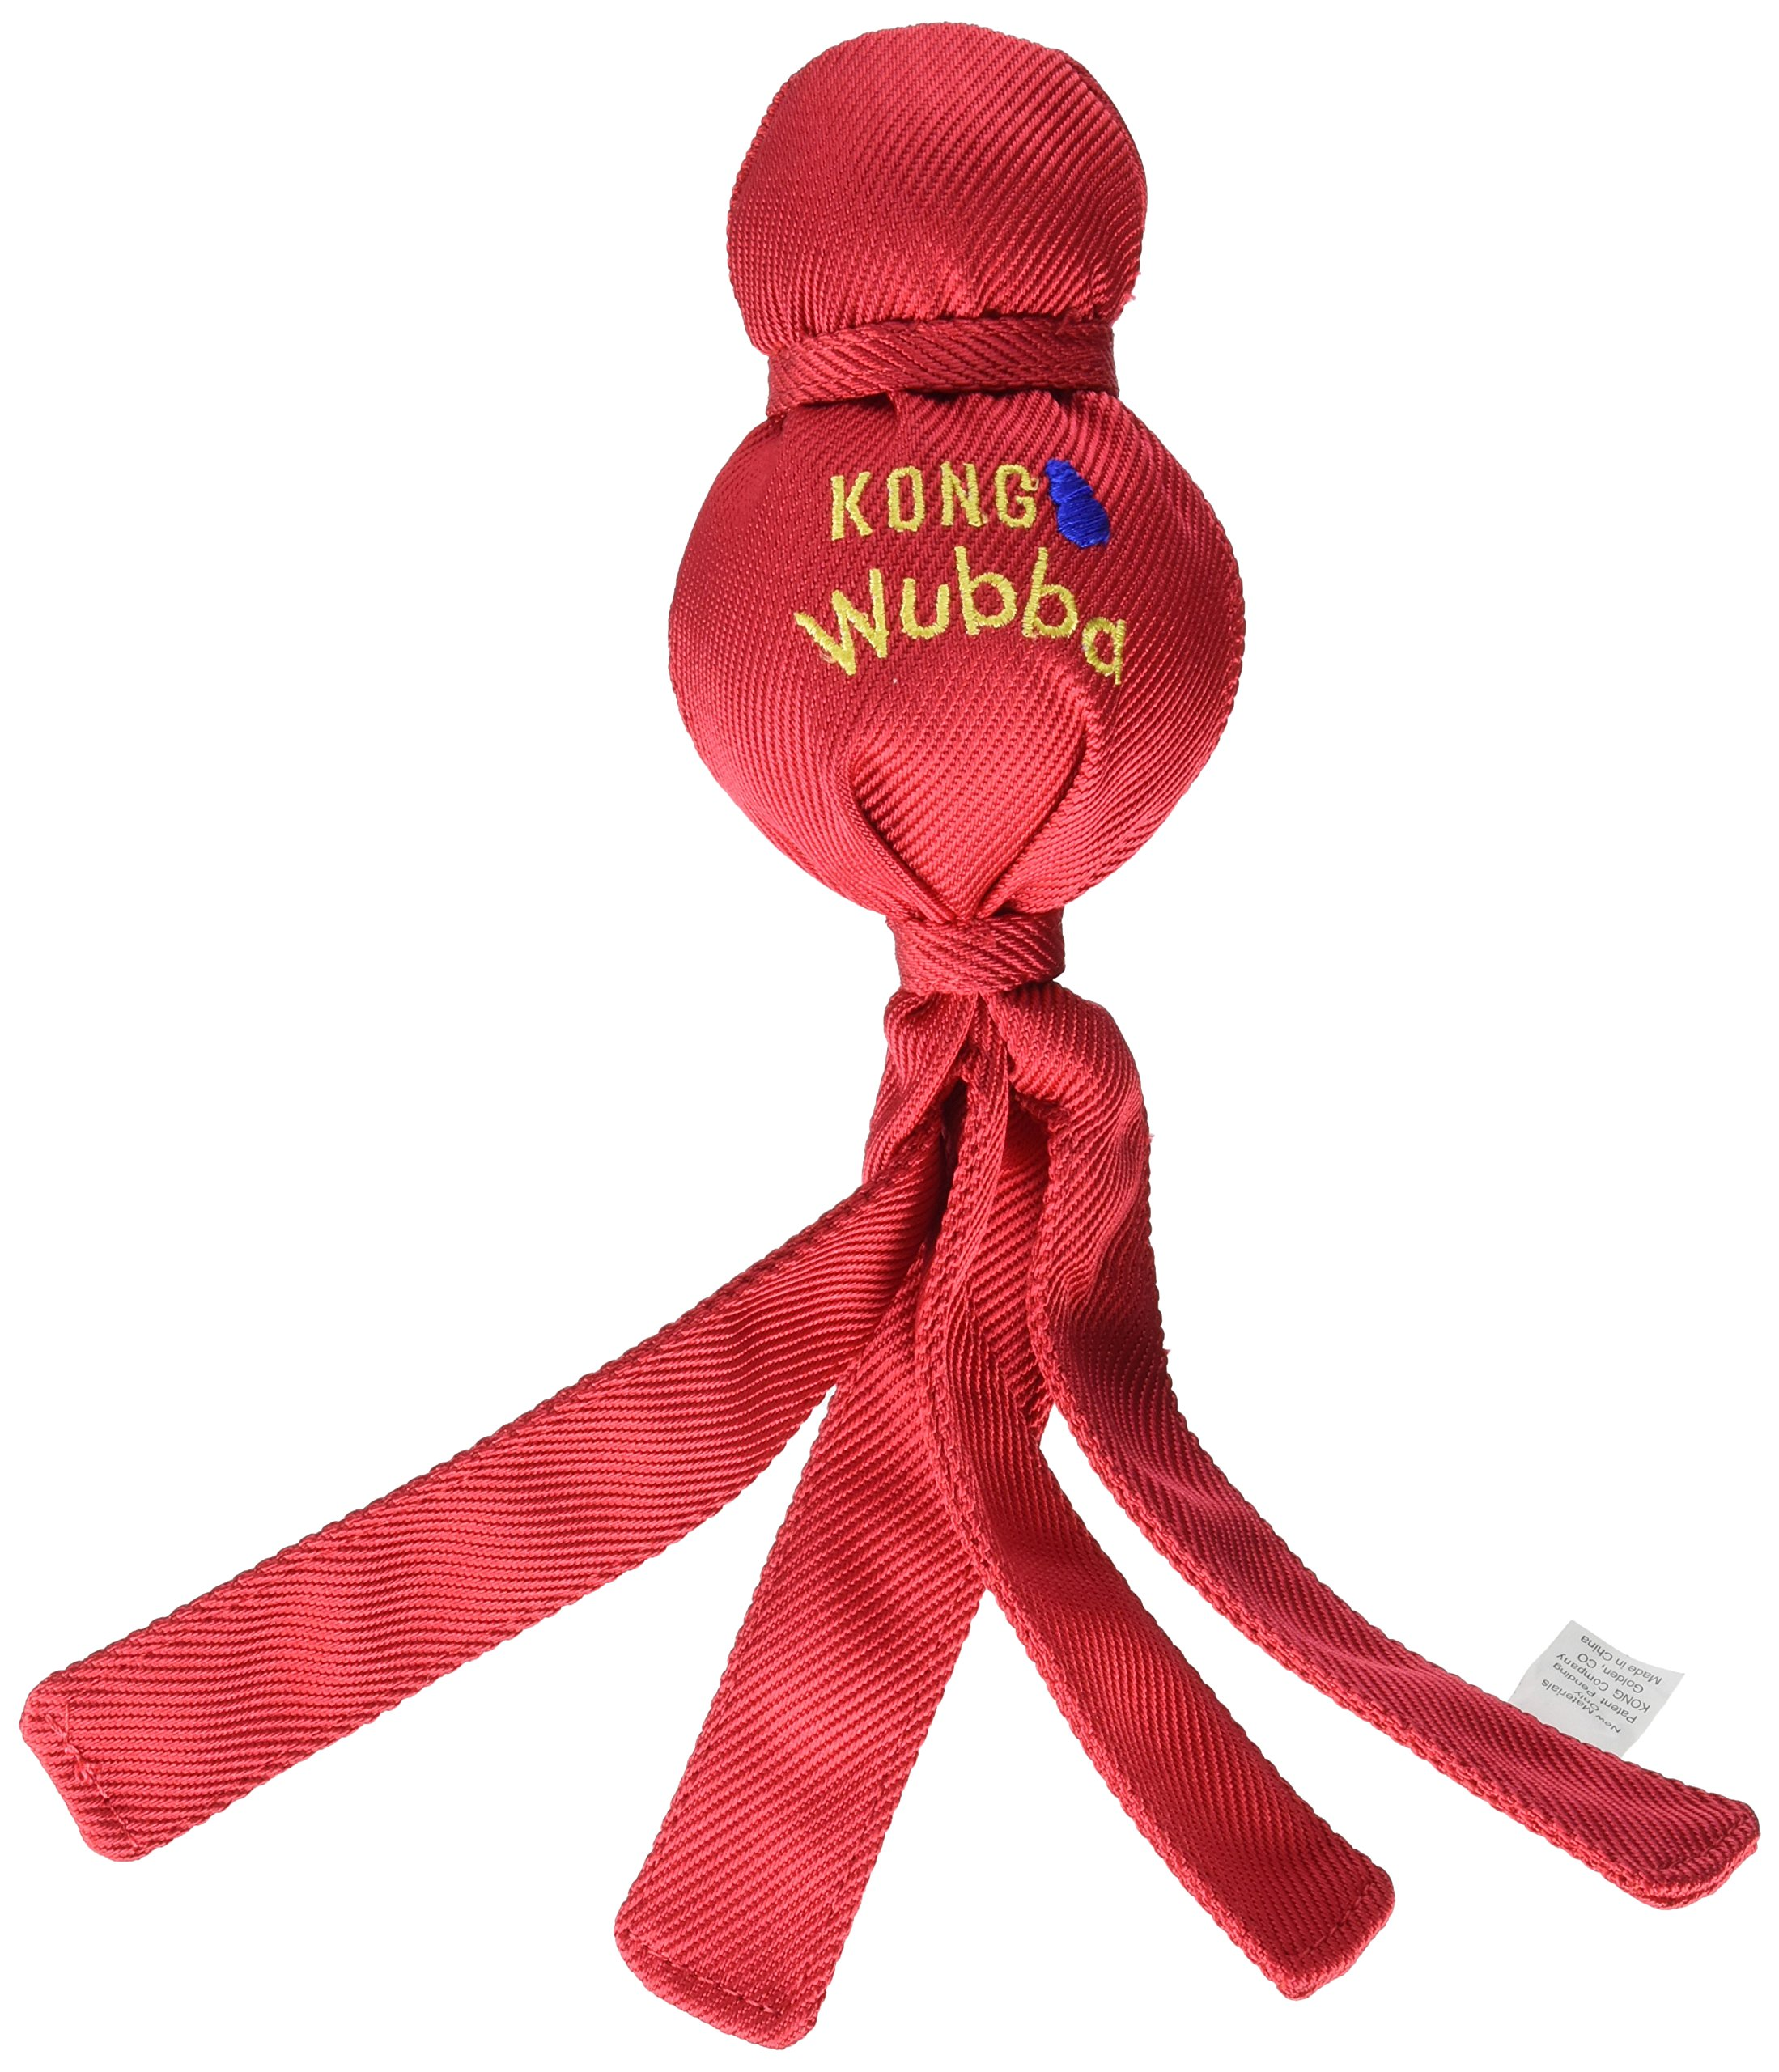 KONG Wubba Dog Toy Large Wubba Assorted Colors